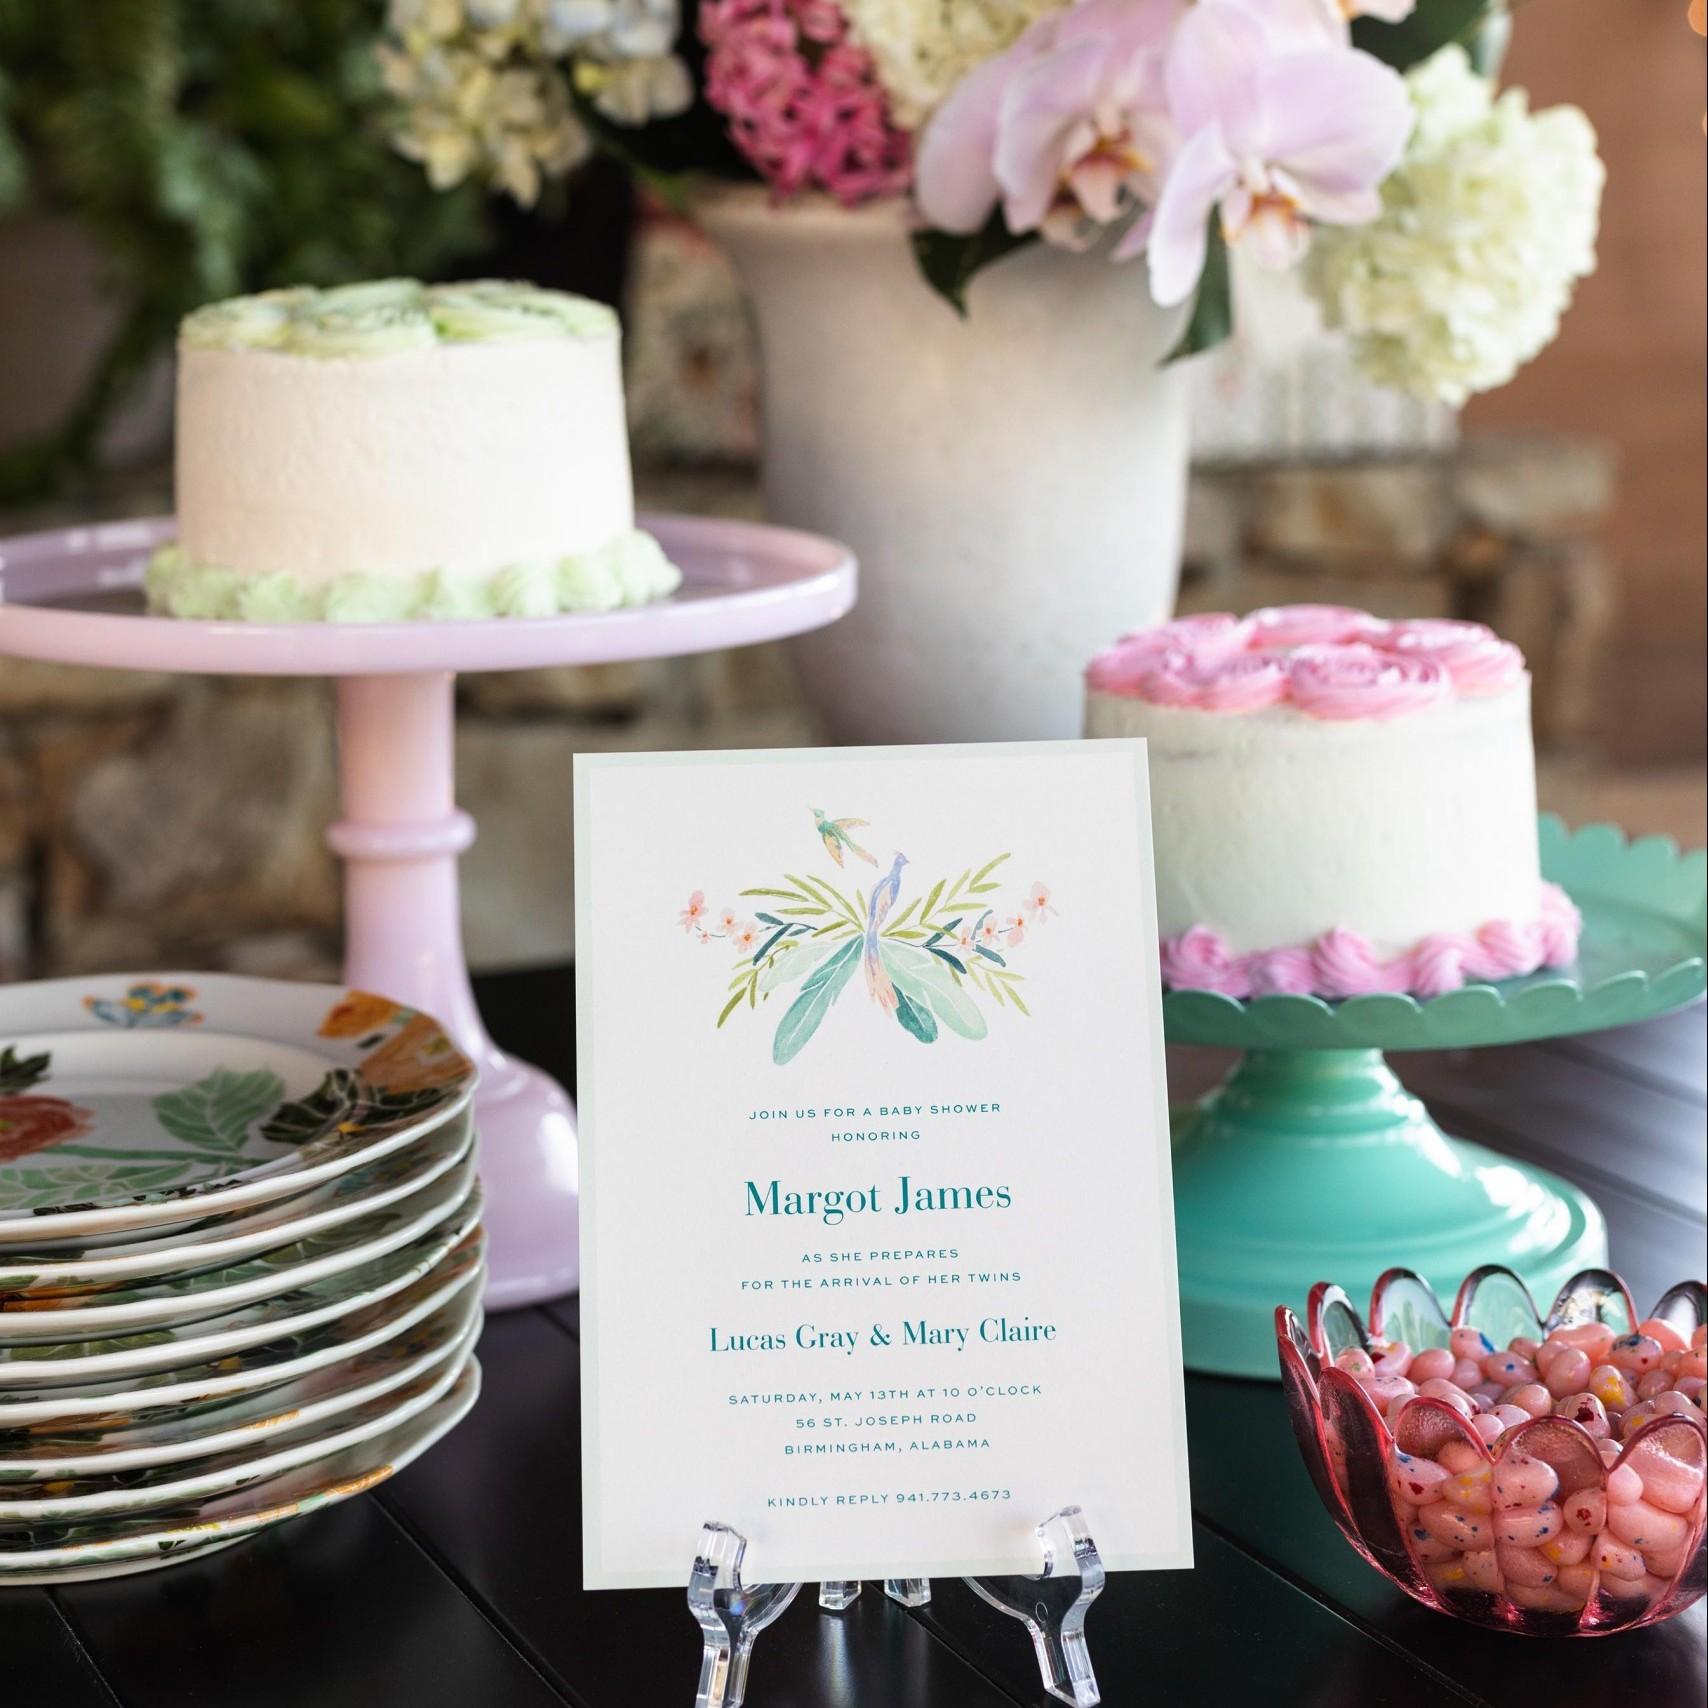 Setting the Scene … A Baby Shower for Twins!